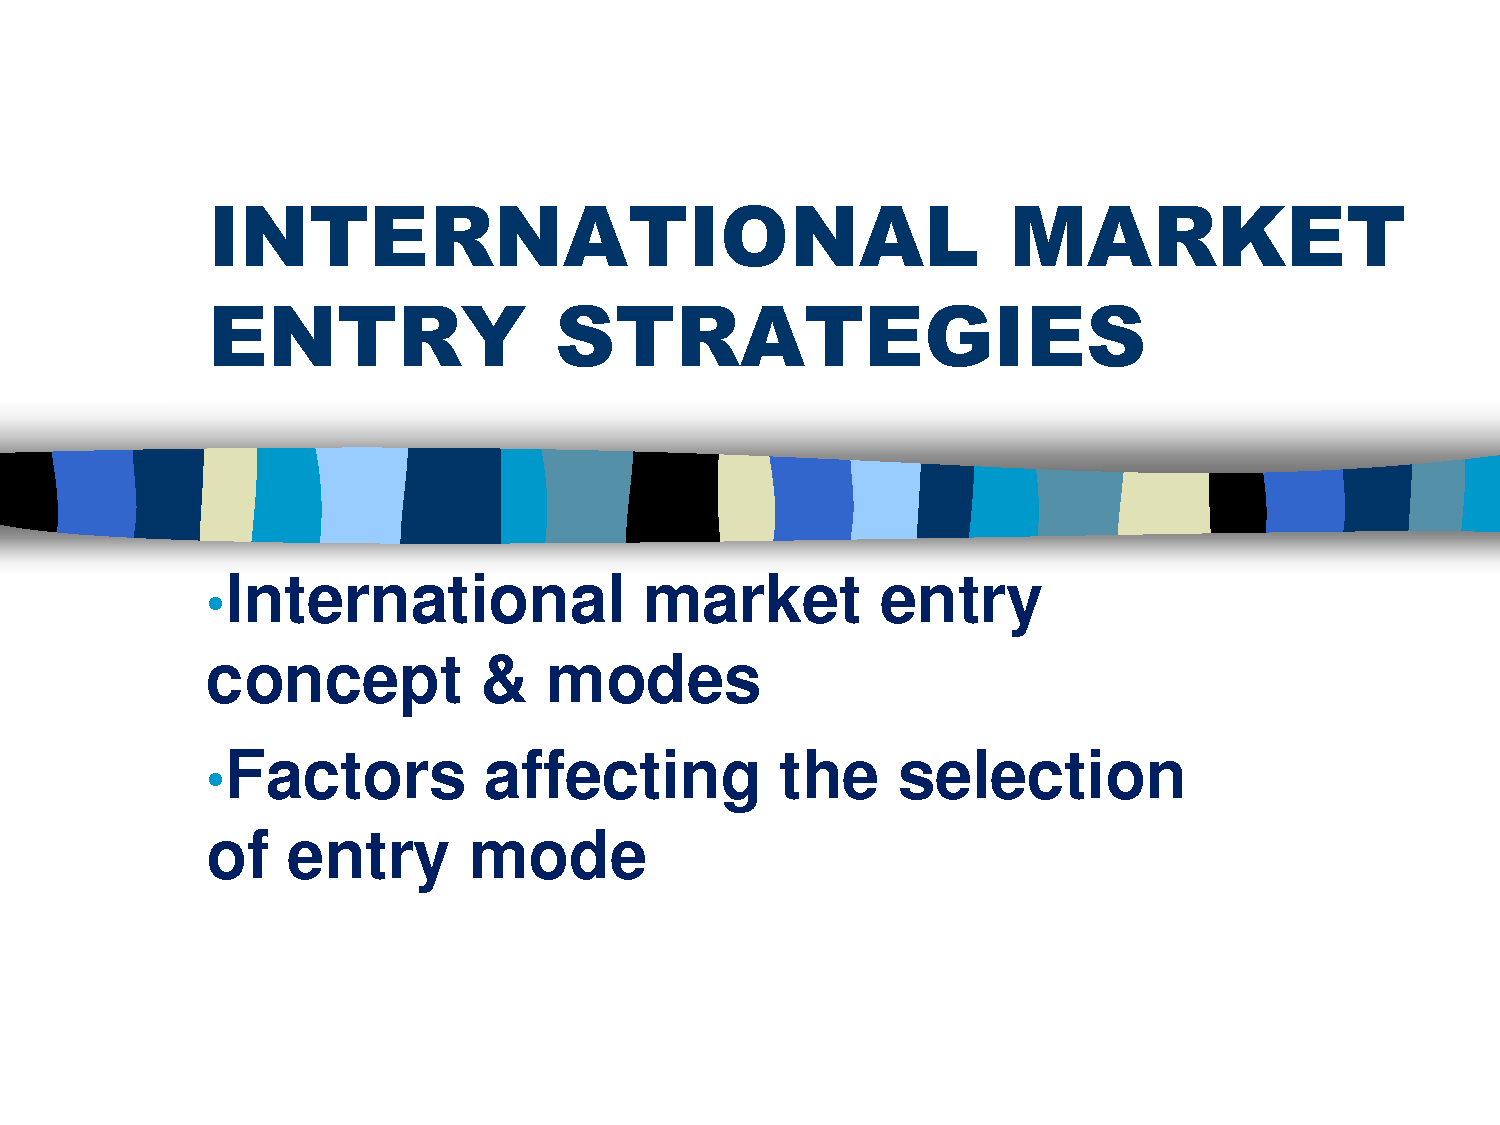 Image Showing International Markets Entry Method: Partner or Invest